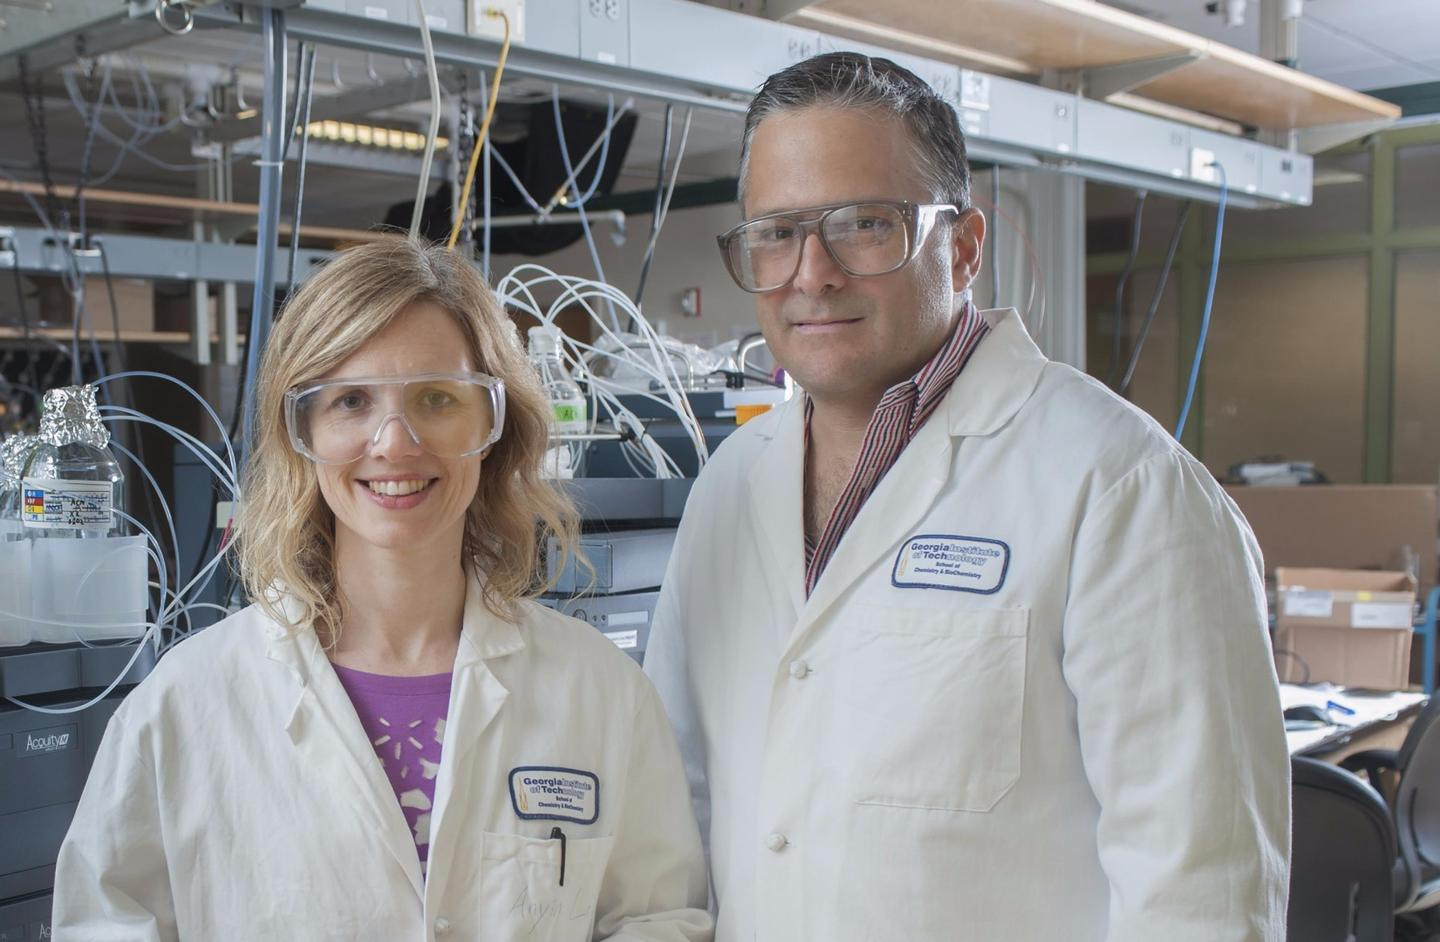 Researchers on the project Martha Grover (left) andFacundoFernández